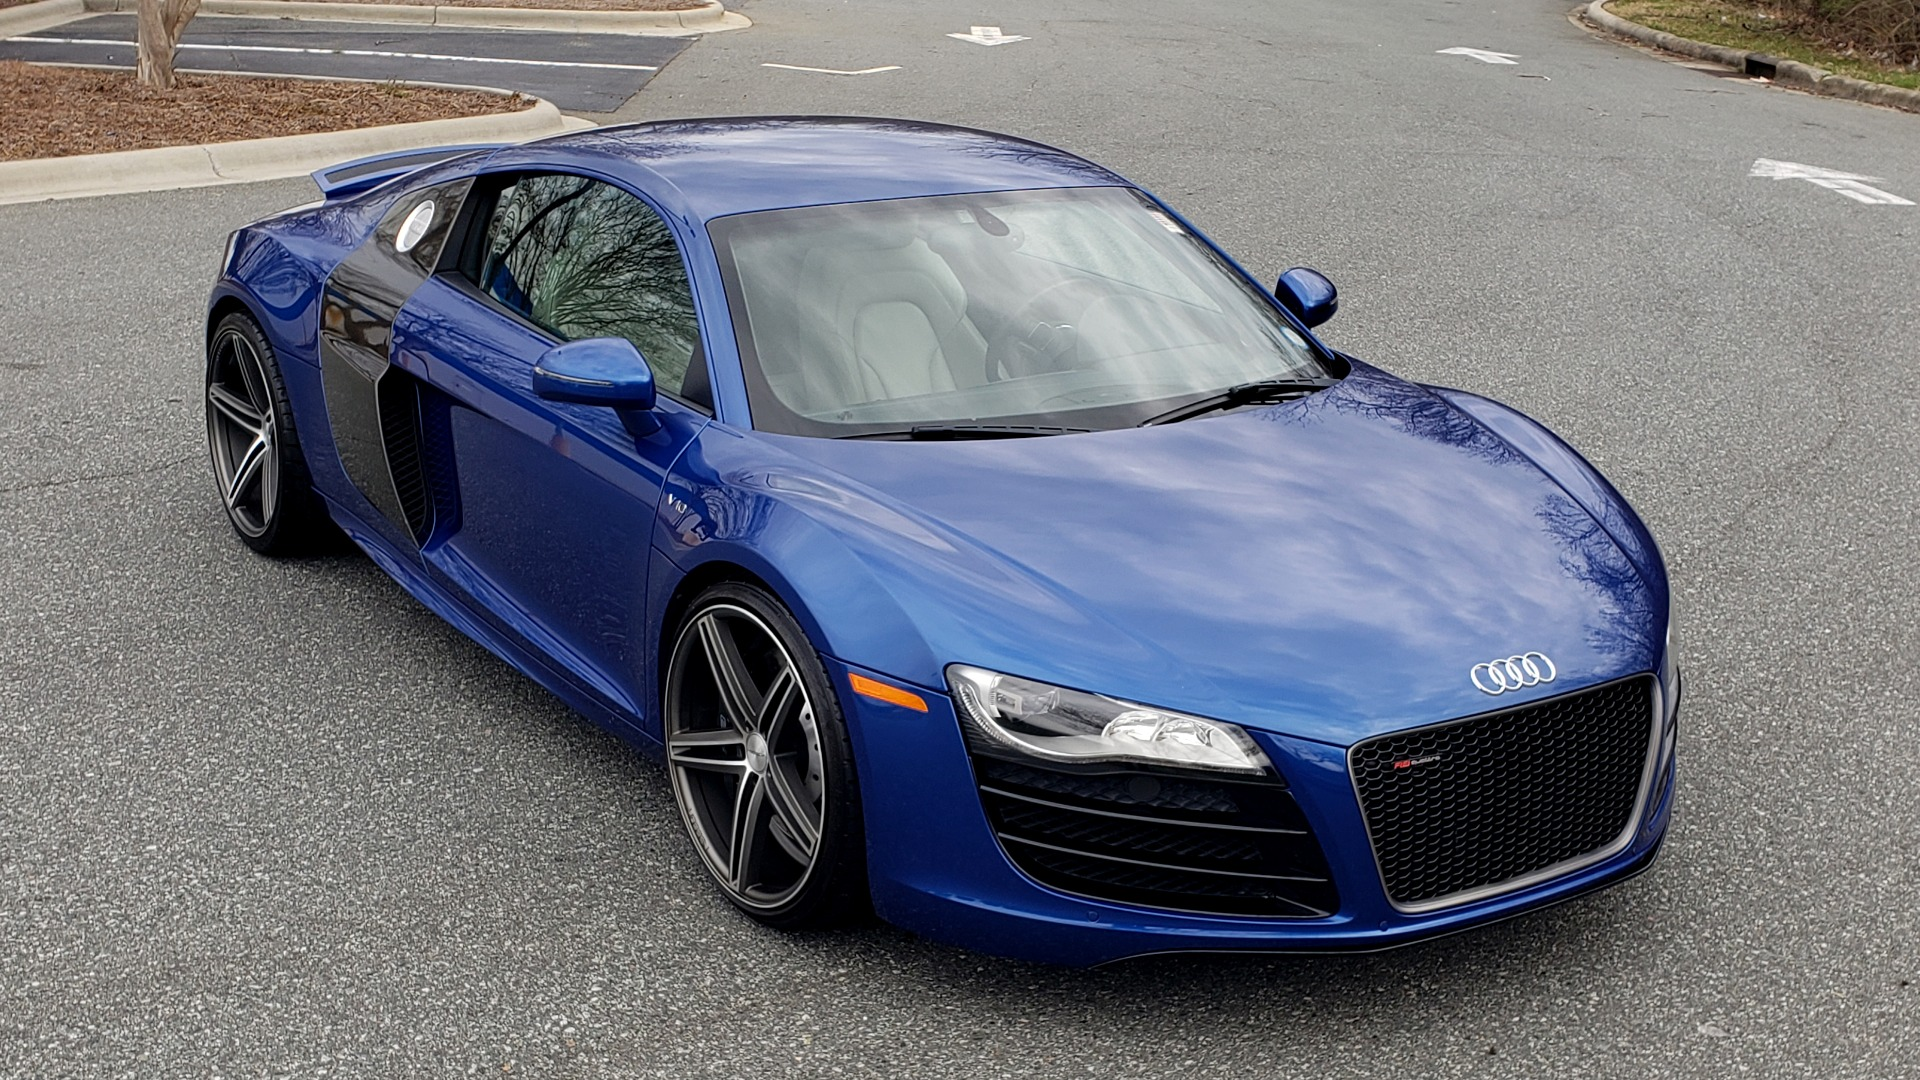 Used 2010 Audi R8 5.2L V10 / AWD / NAV / B&O SND / HTD STS / CUSTOM EXH & WHEELS for sale $78,000 at Formula Imports in Charlotte NC 28227 10